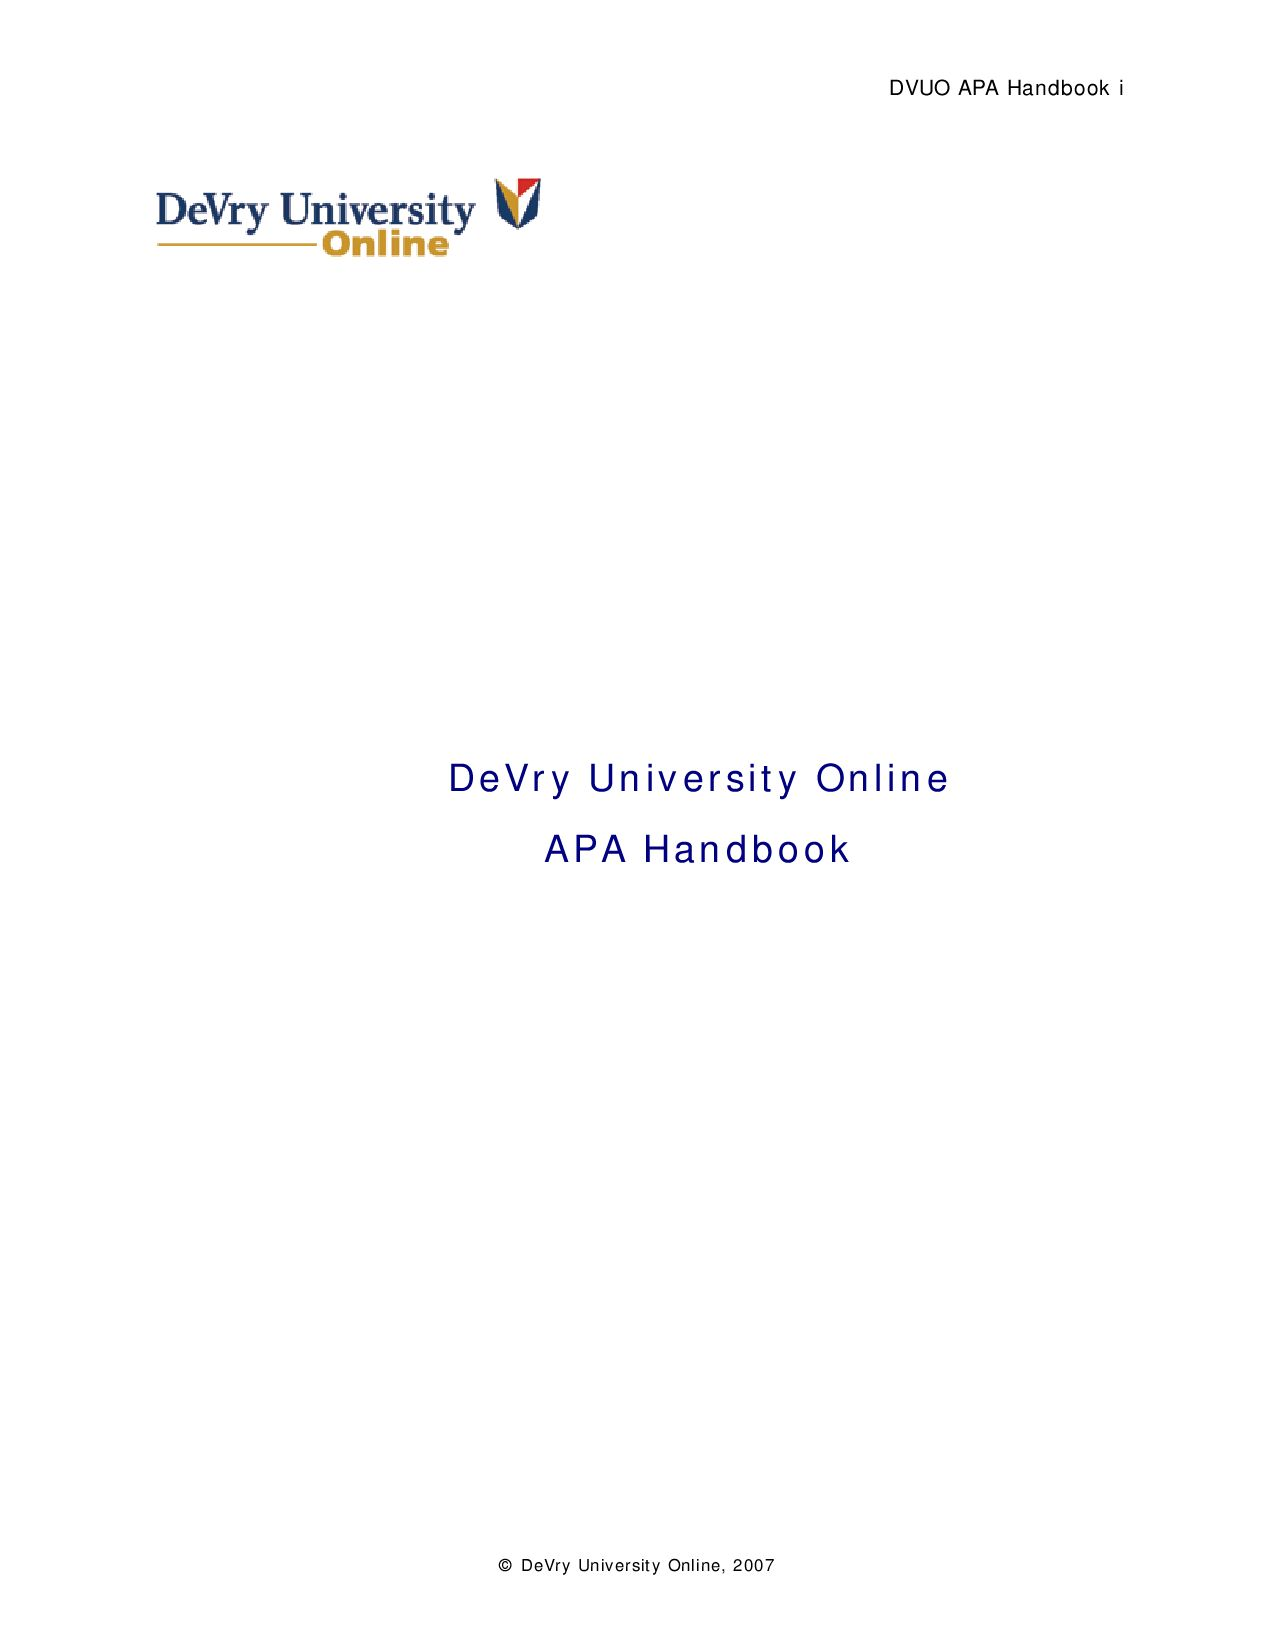 apa devry Apa cover paper a step by step guide for basic apa formatting, apa papers for   an apa paper using google docs youtube for cover, example essay test devry.